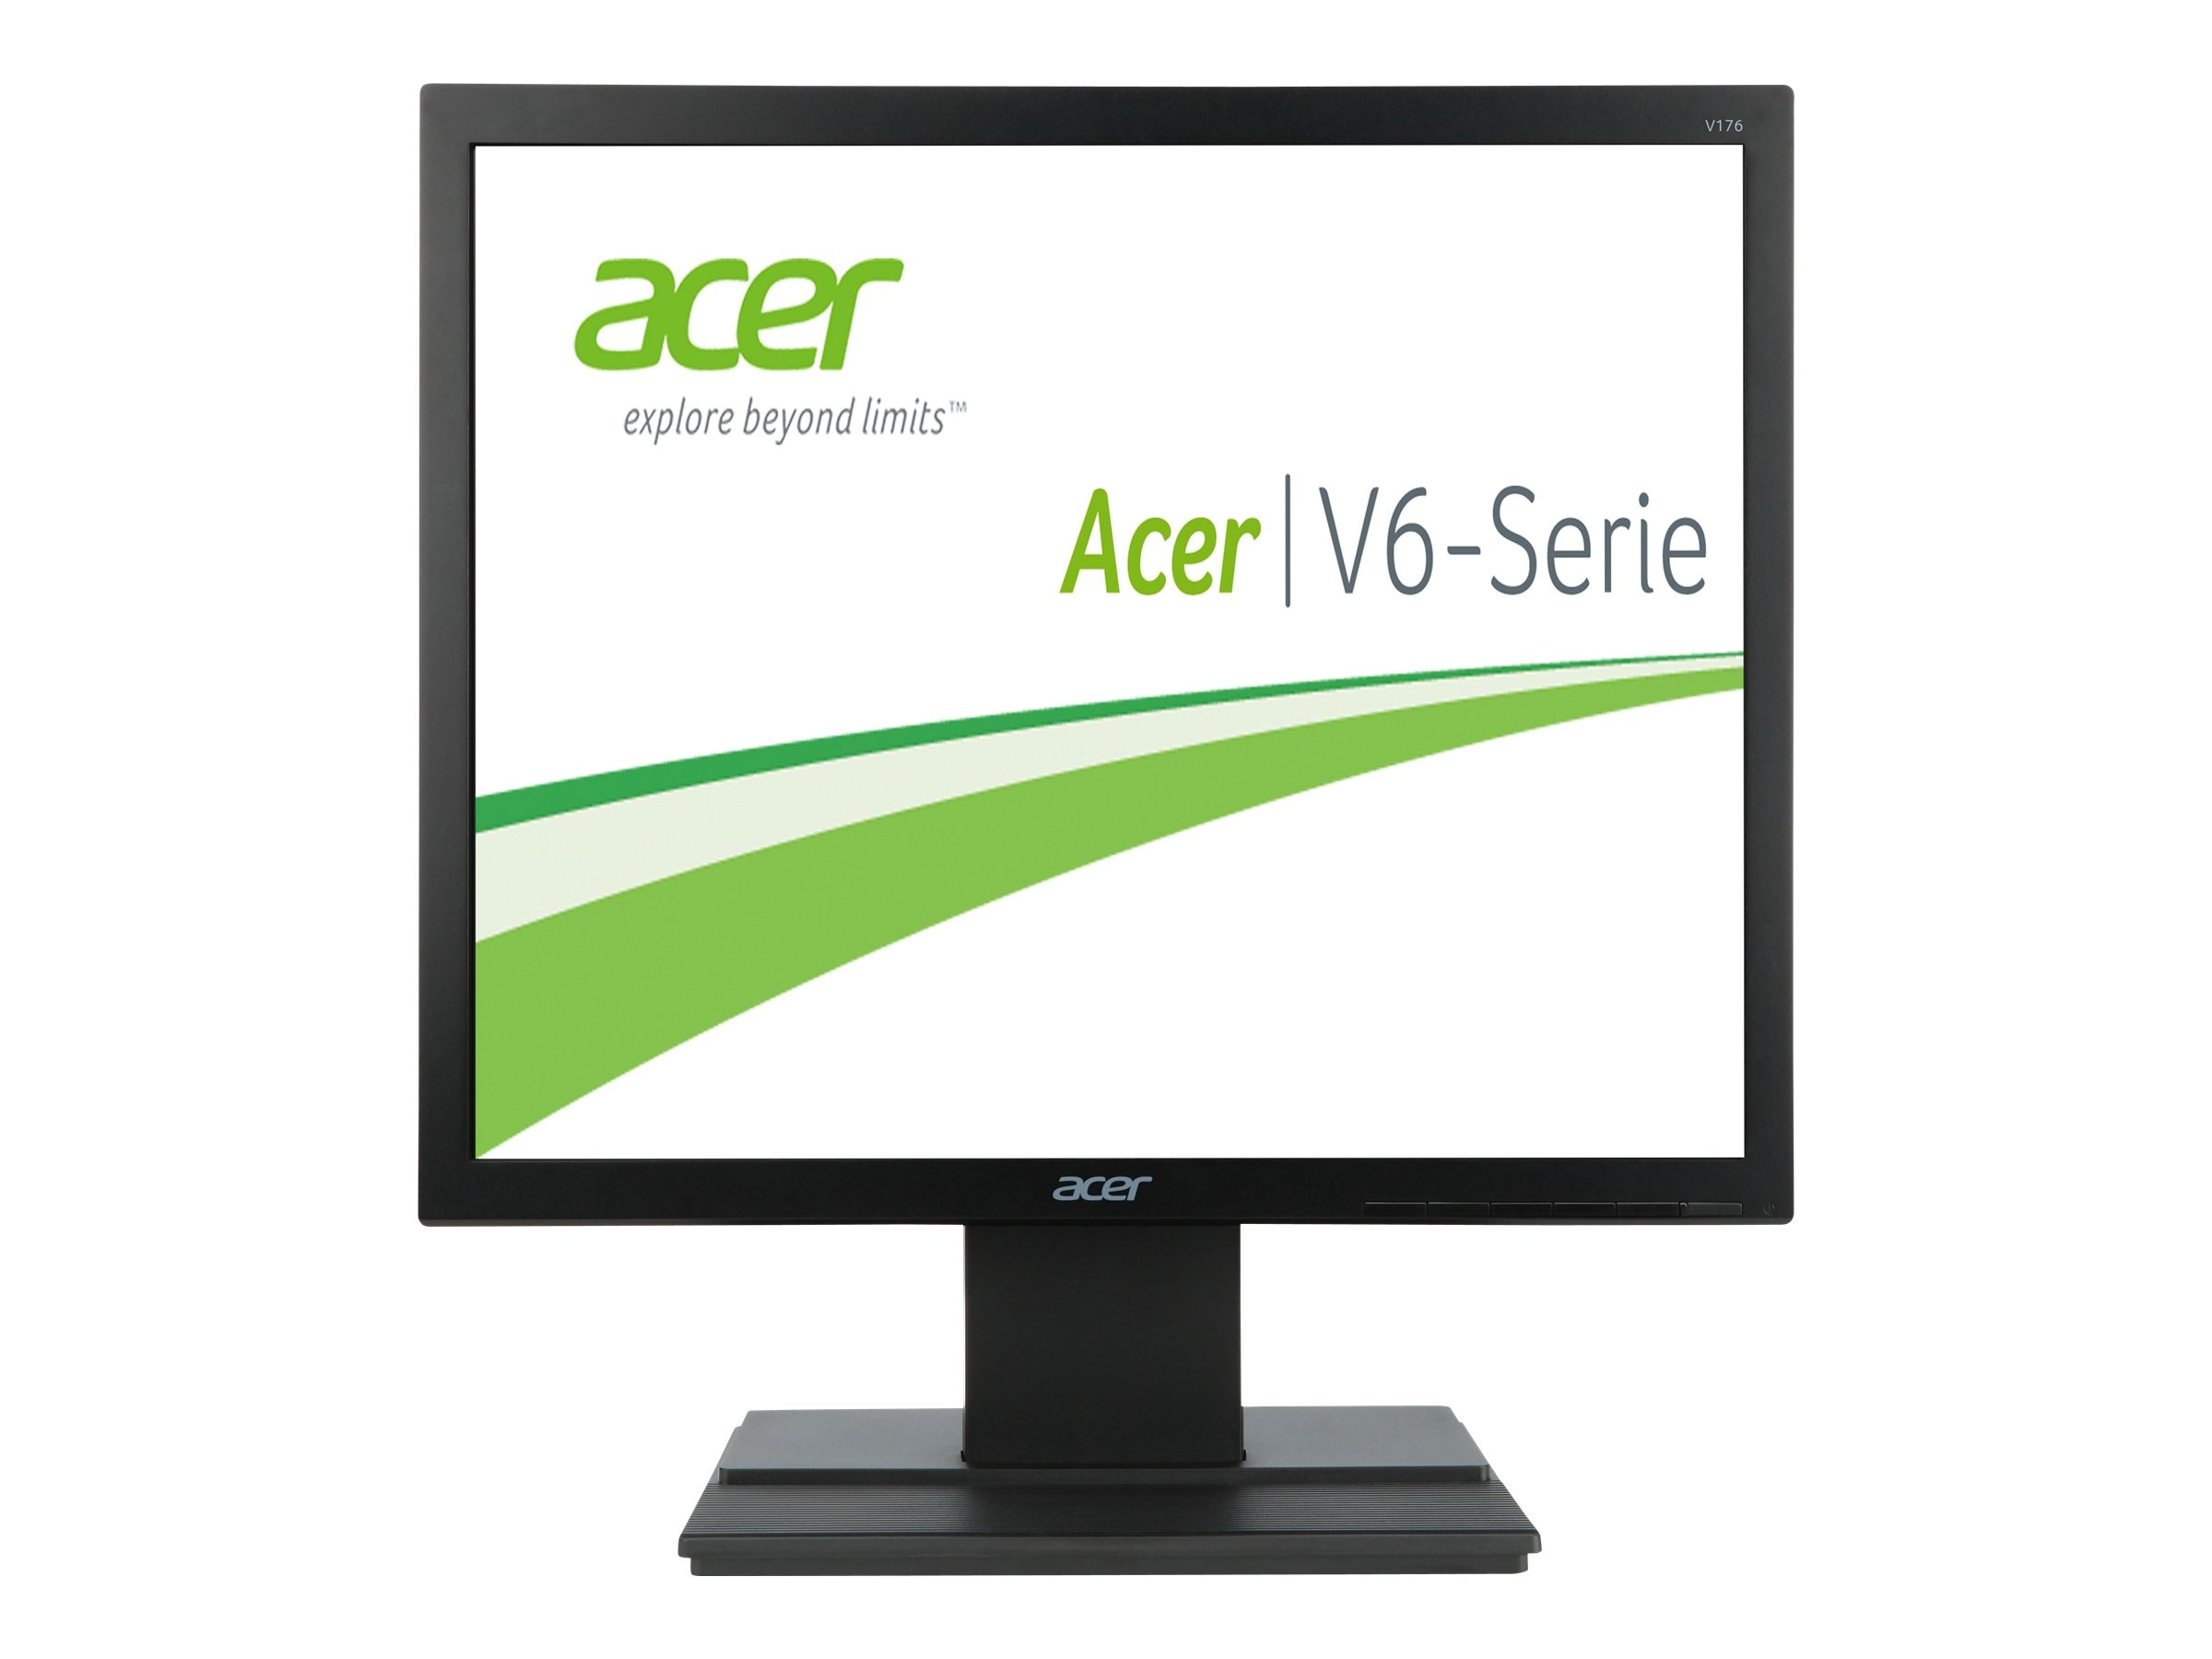 Acer 17 V176L bd LED-LCD Monitor, Black